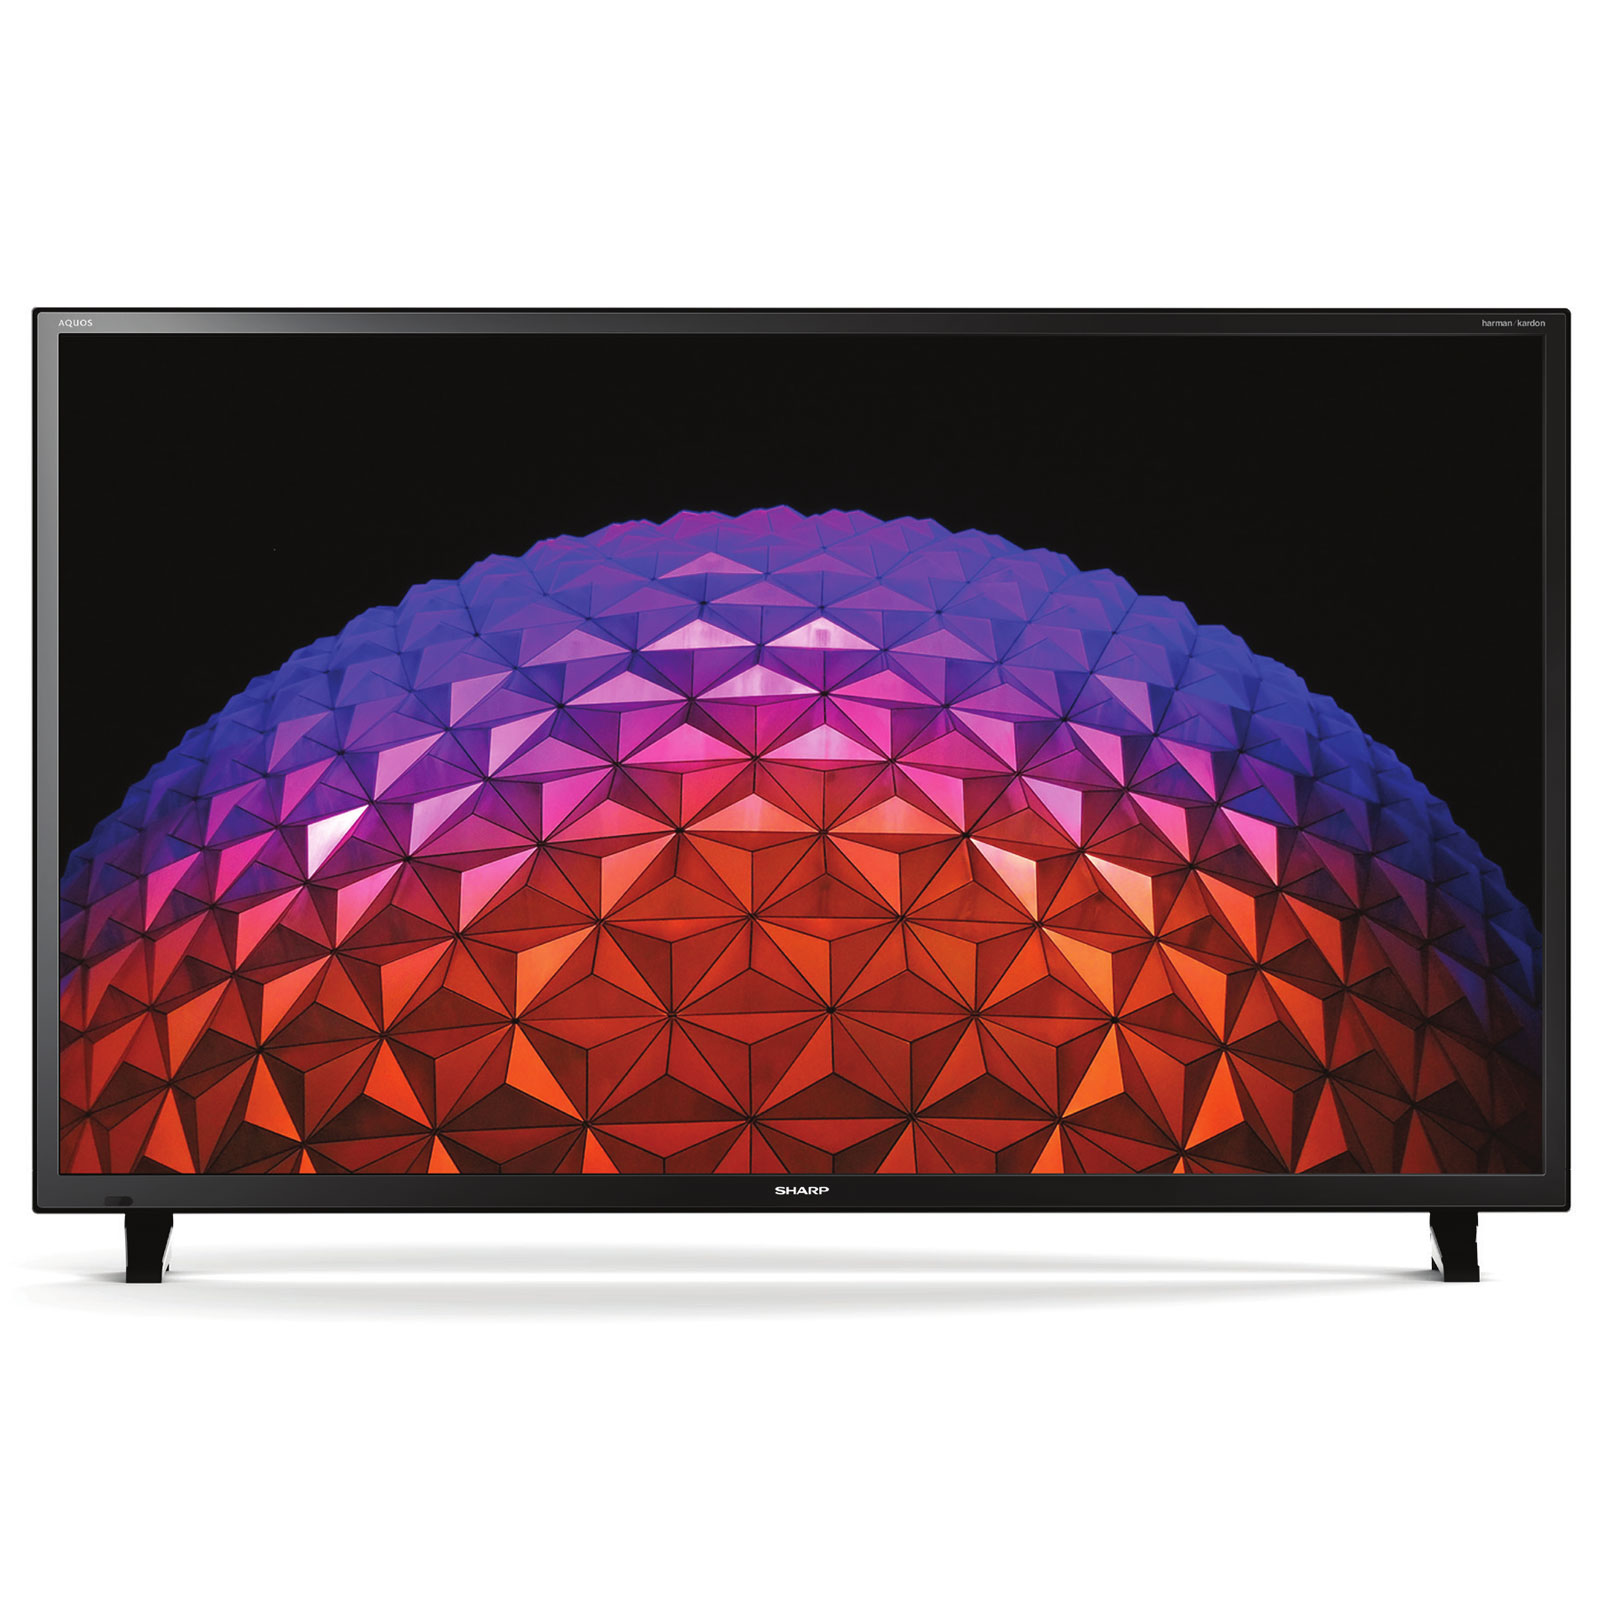 "TV Sharp LC-48CFG6002 Téléviseur LED Full HD 48"" (122 cm) - 1920 x 1080 pixels - HDTV 1080p - Wi-Fi - DLNA - Harman/Kardon - 200 Hz"